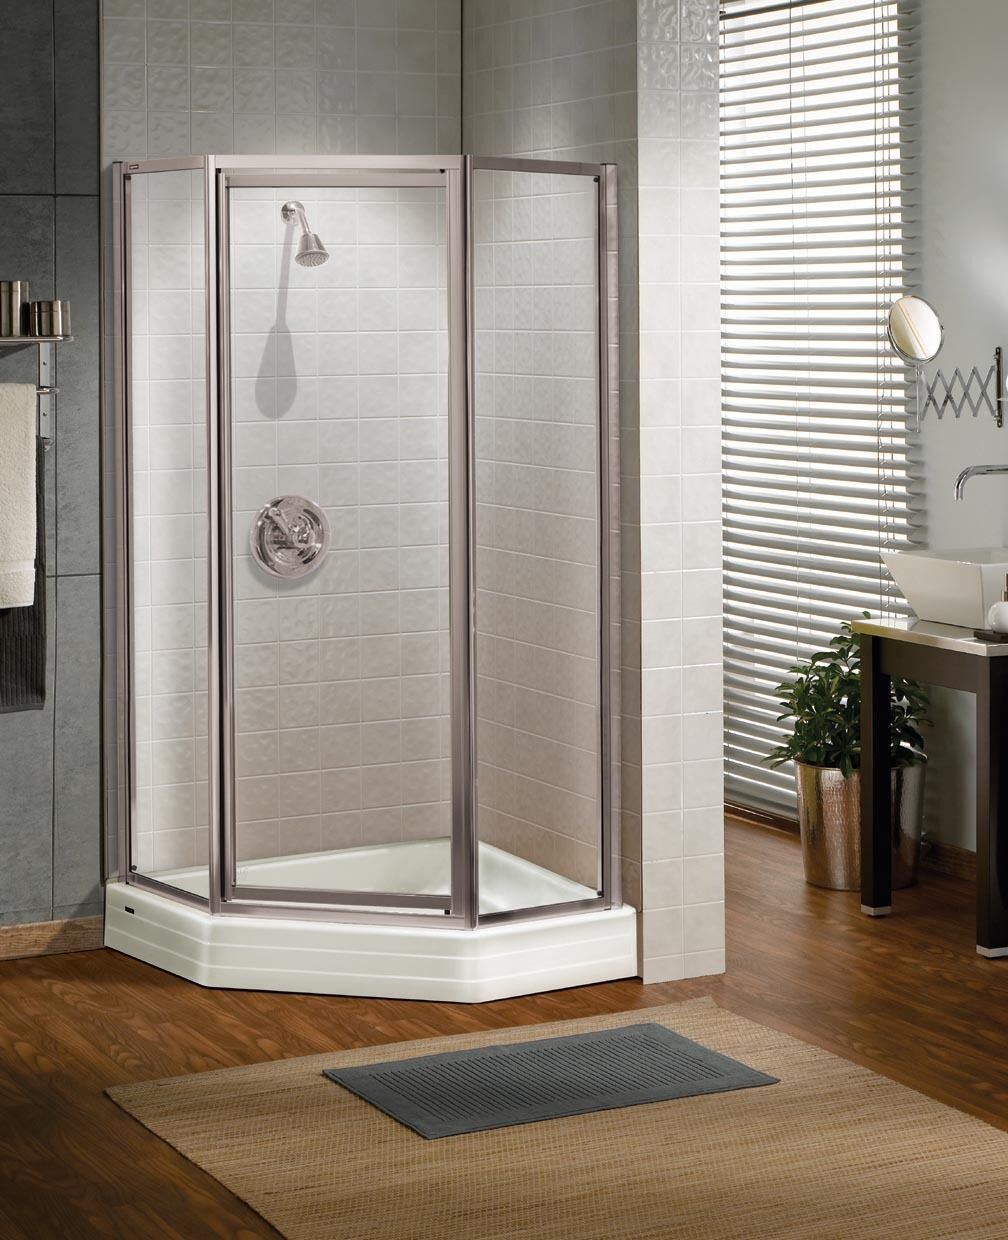 Maax Silhouette Plus 36 X 36 Frosted Glass Neo Angle Pivot Corner Shower Door